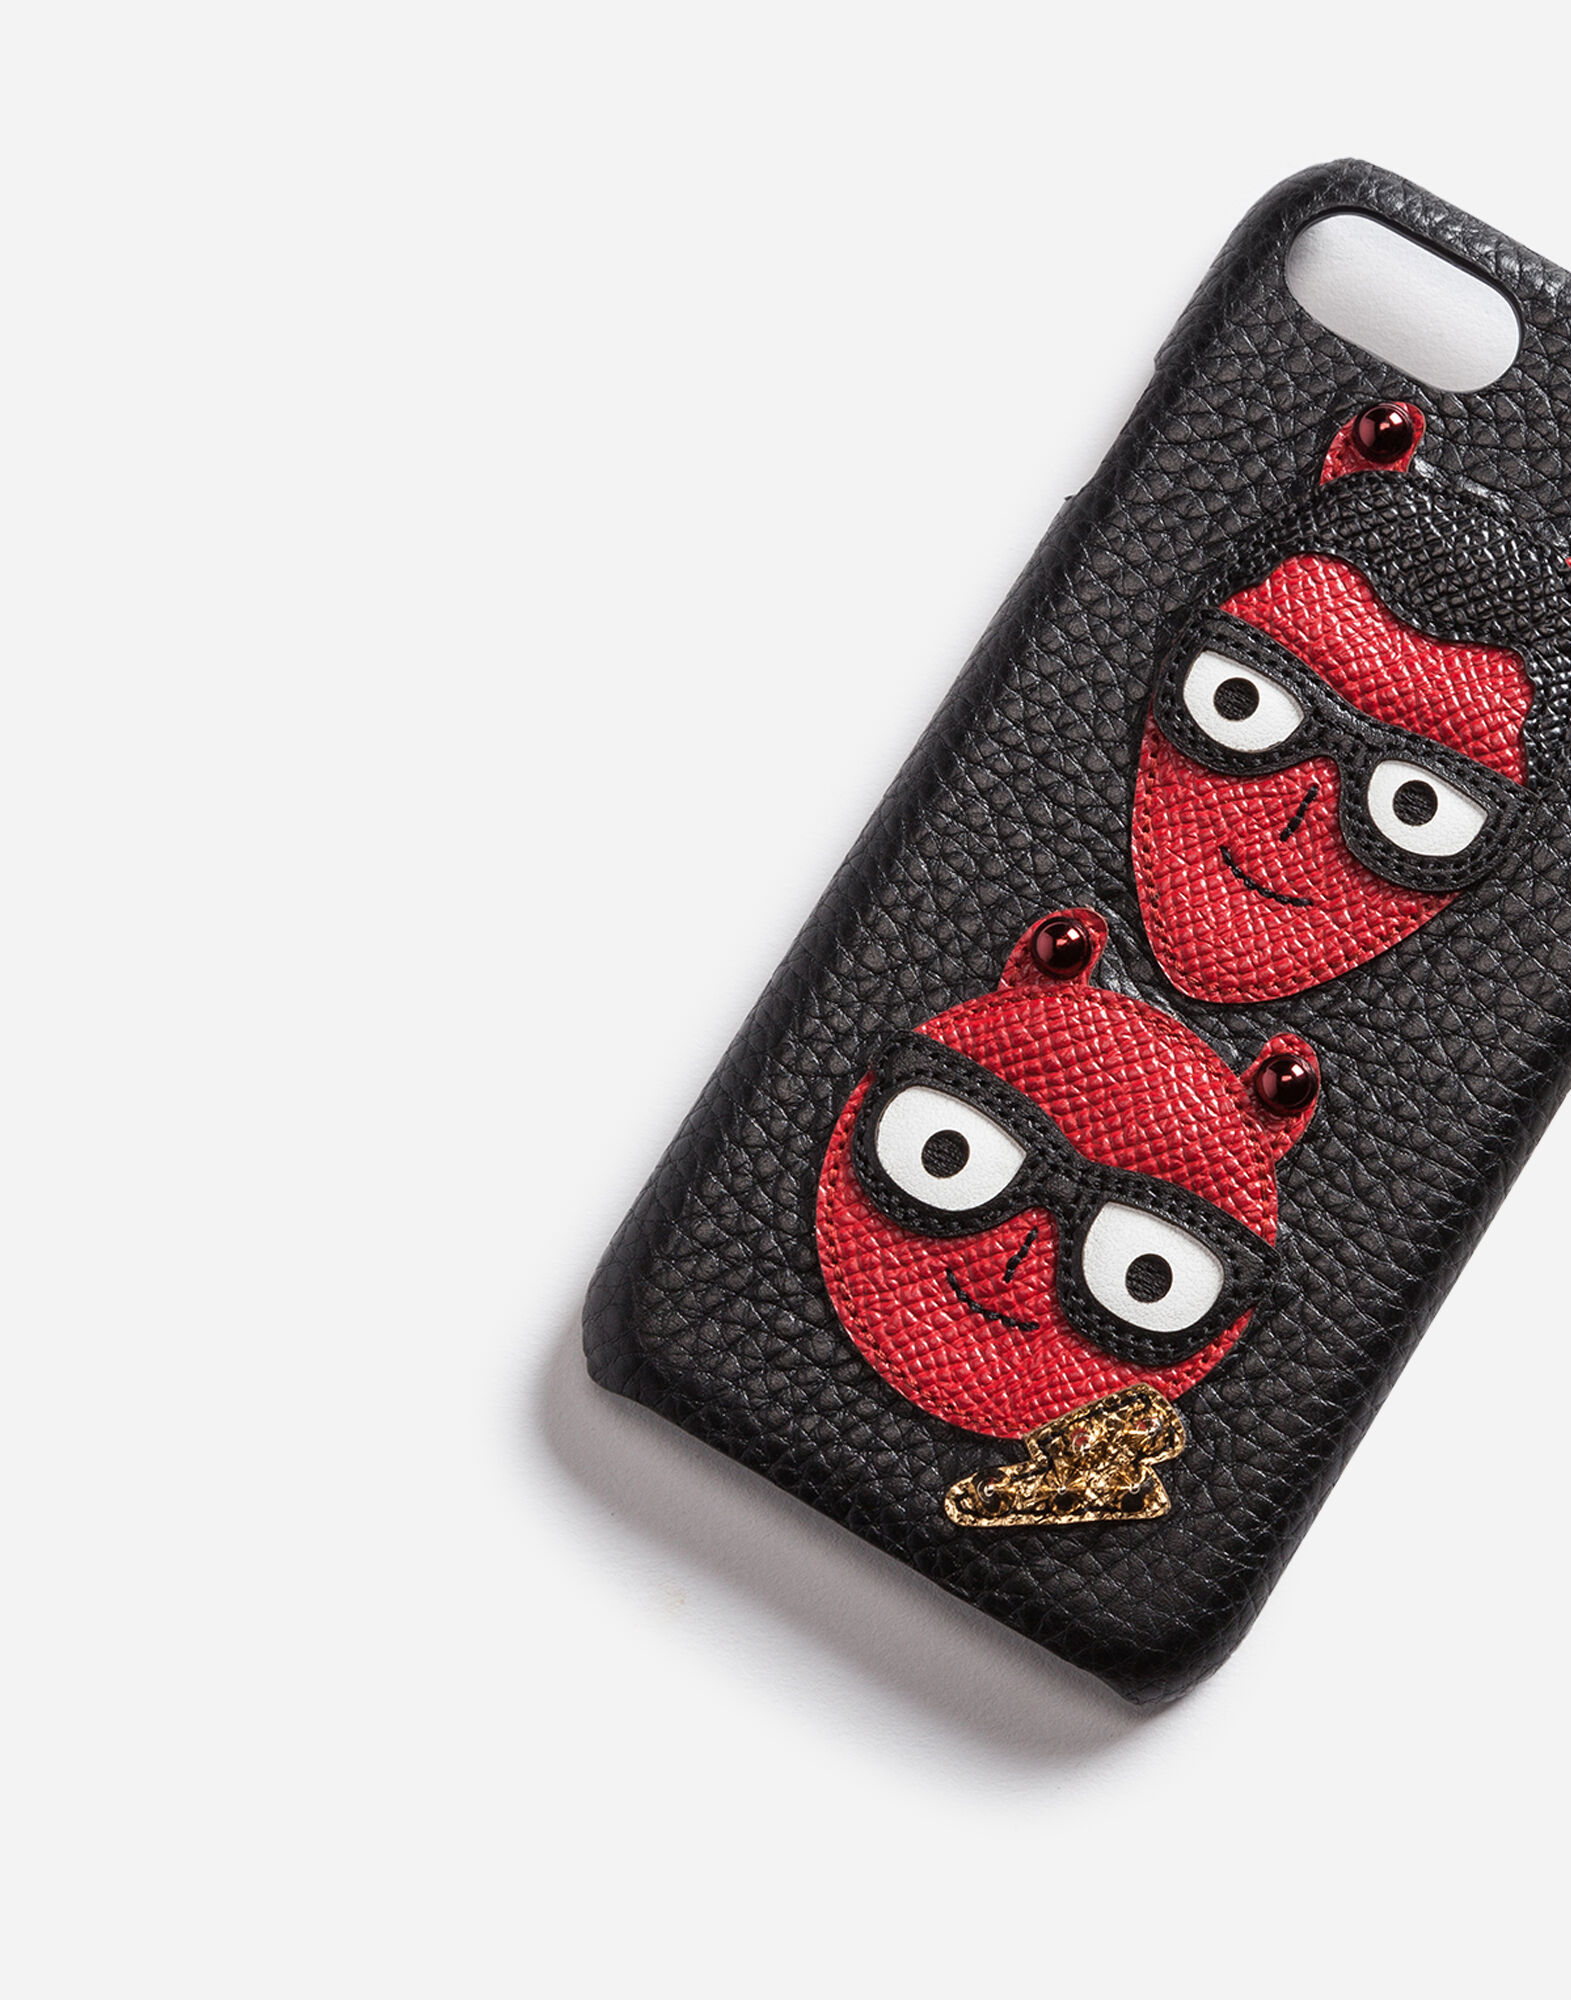 IPHONE 7 COVER WITH PATCHES OF THE DESIGNERS